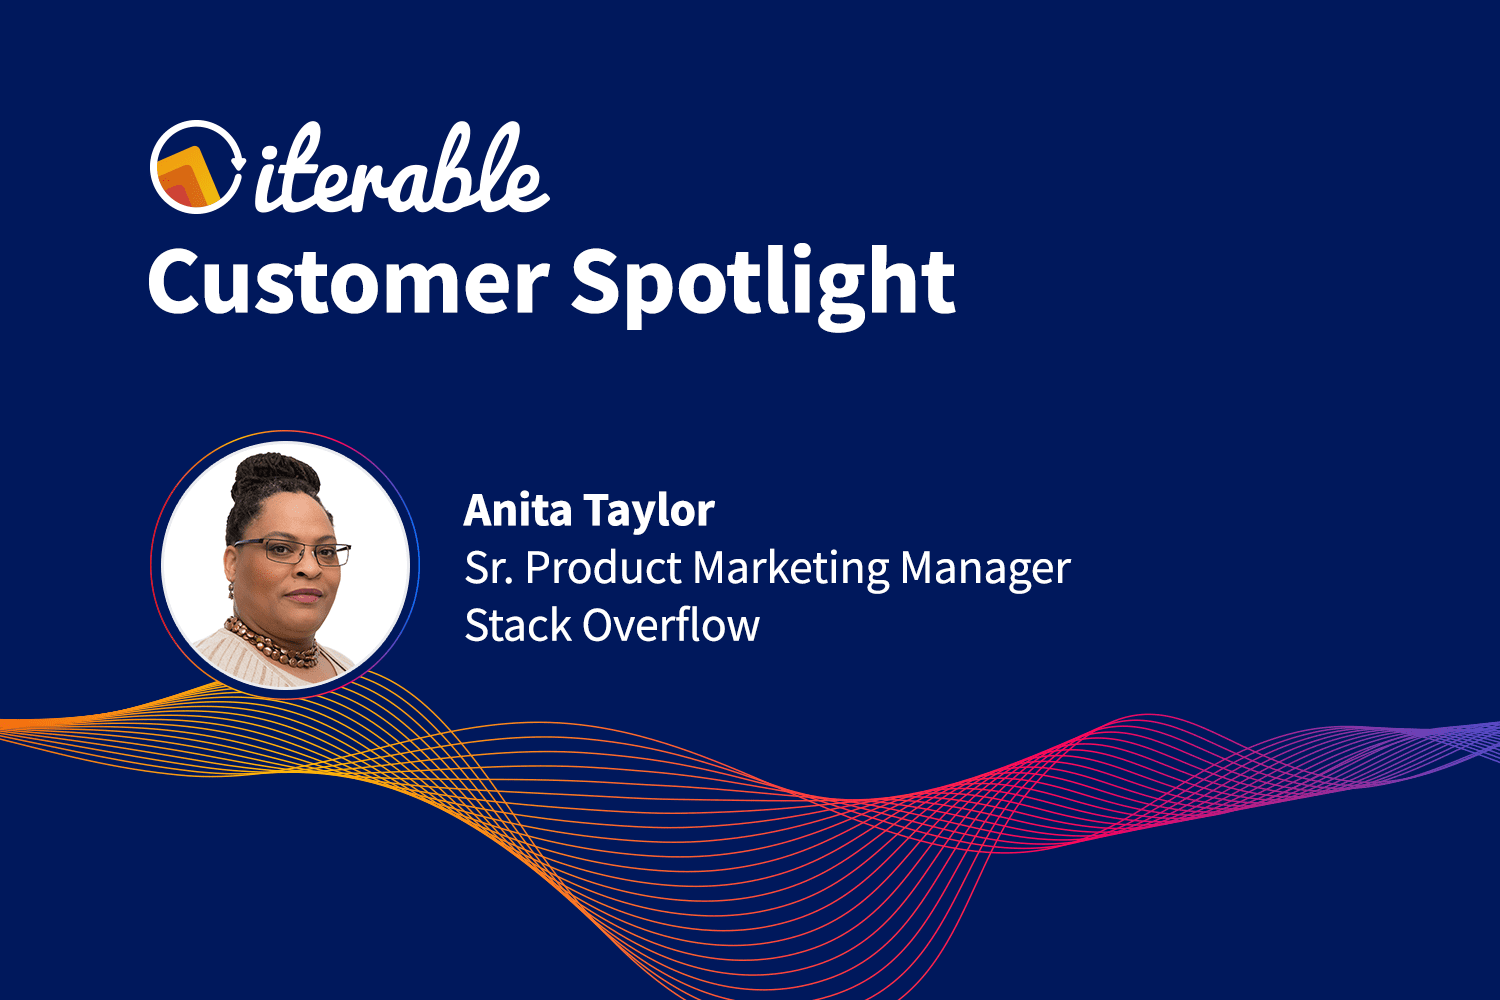 Iterable Customer Spotlight: Anita Taylor